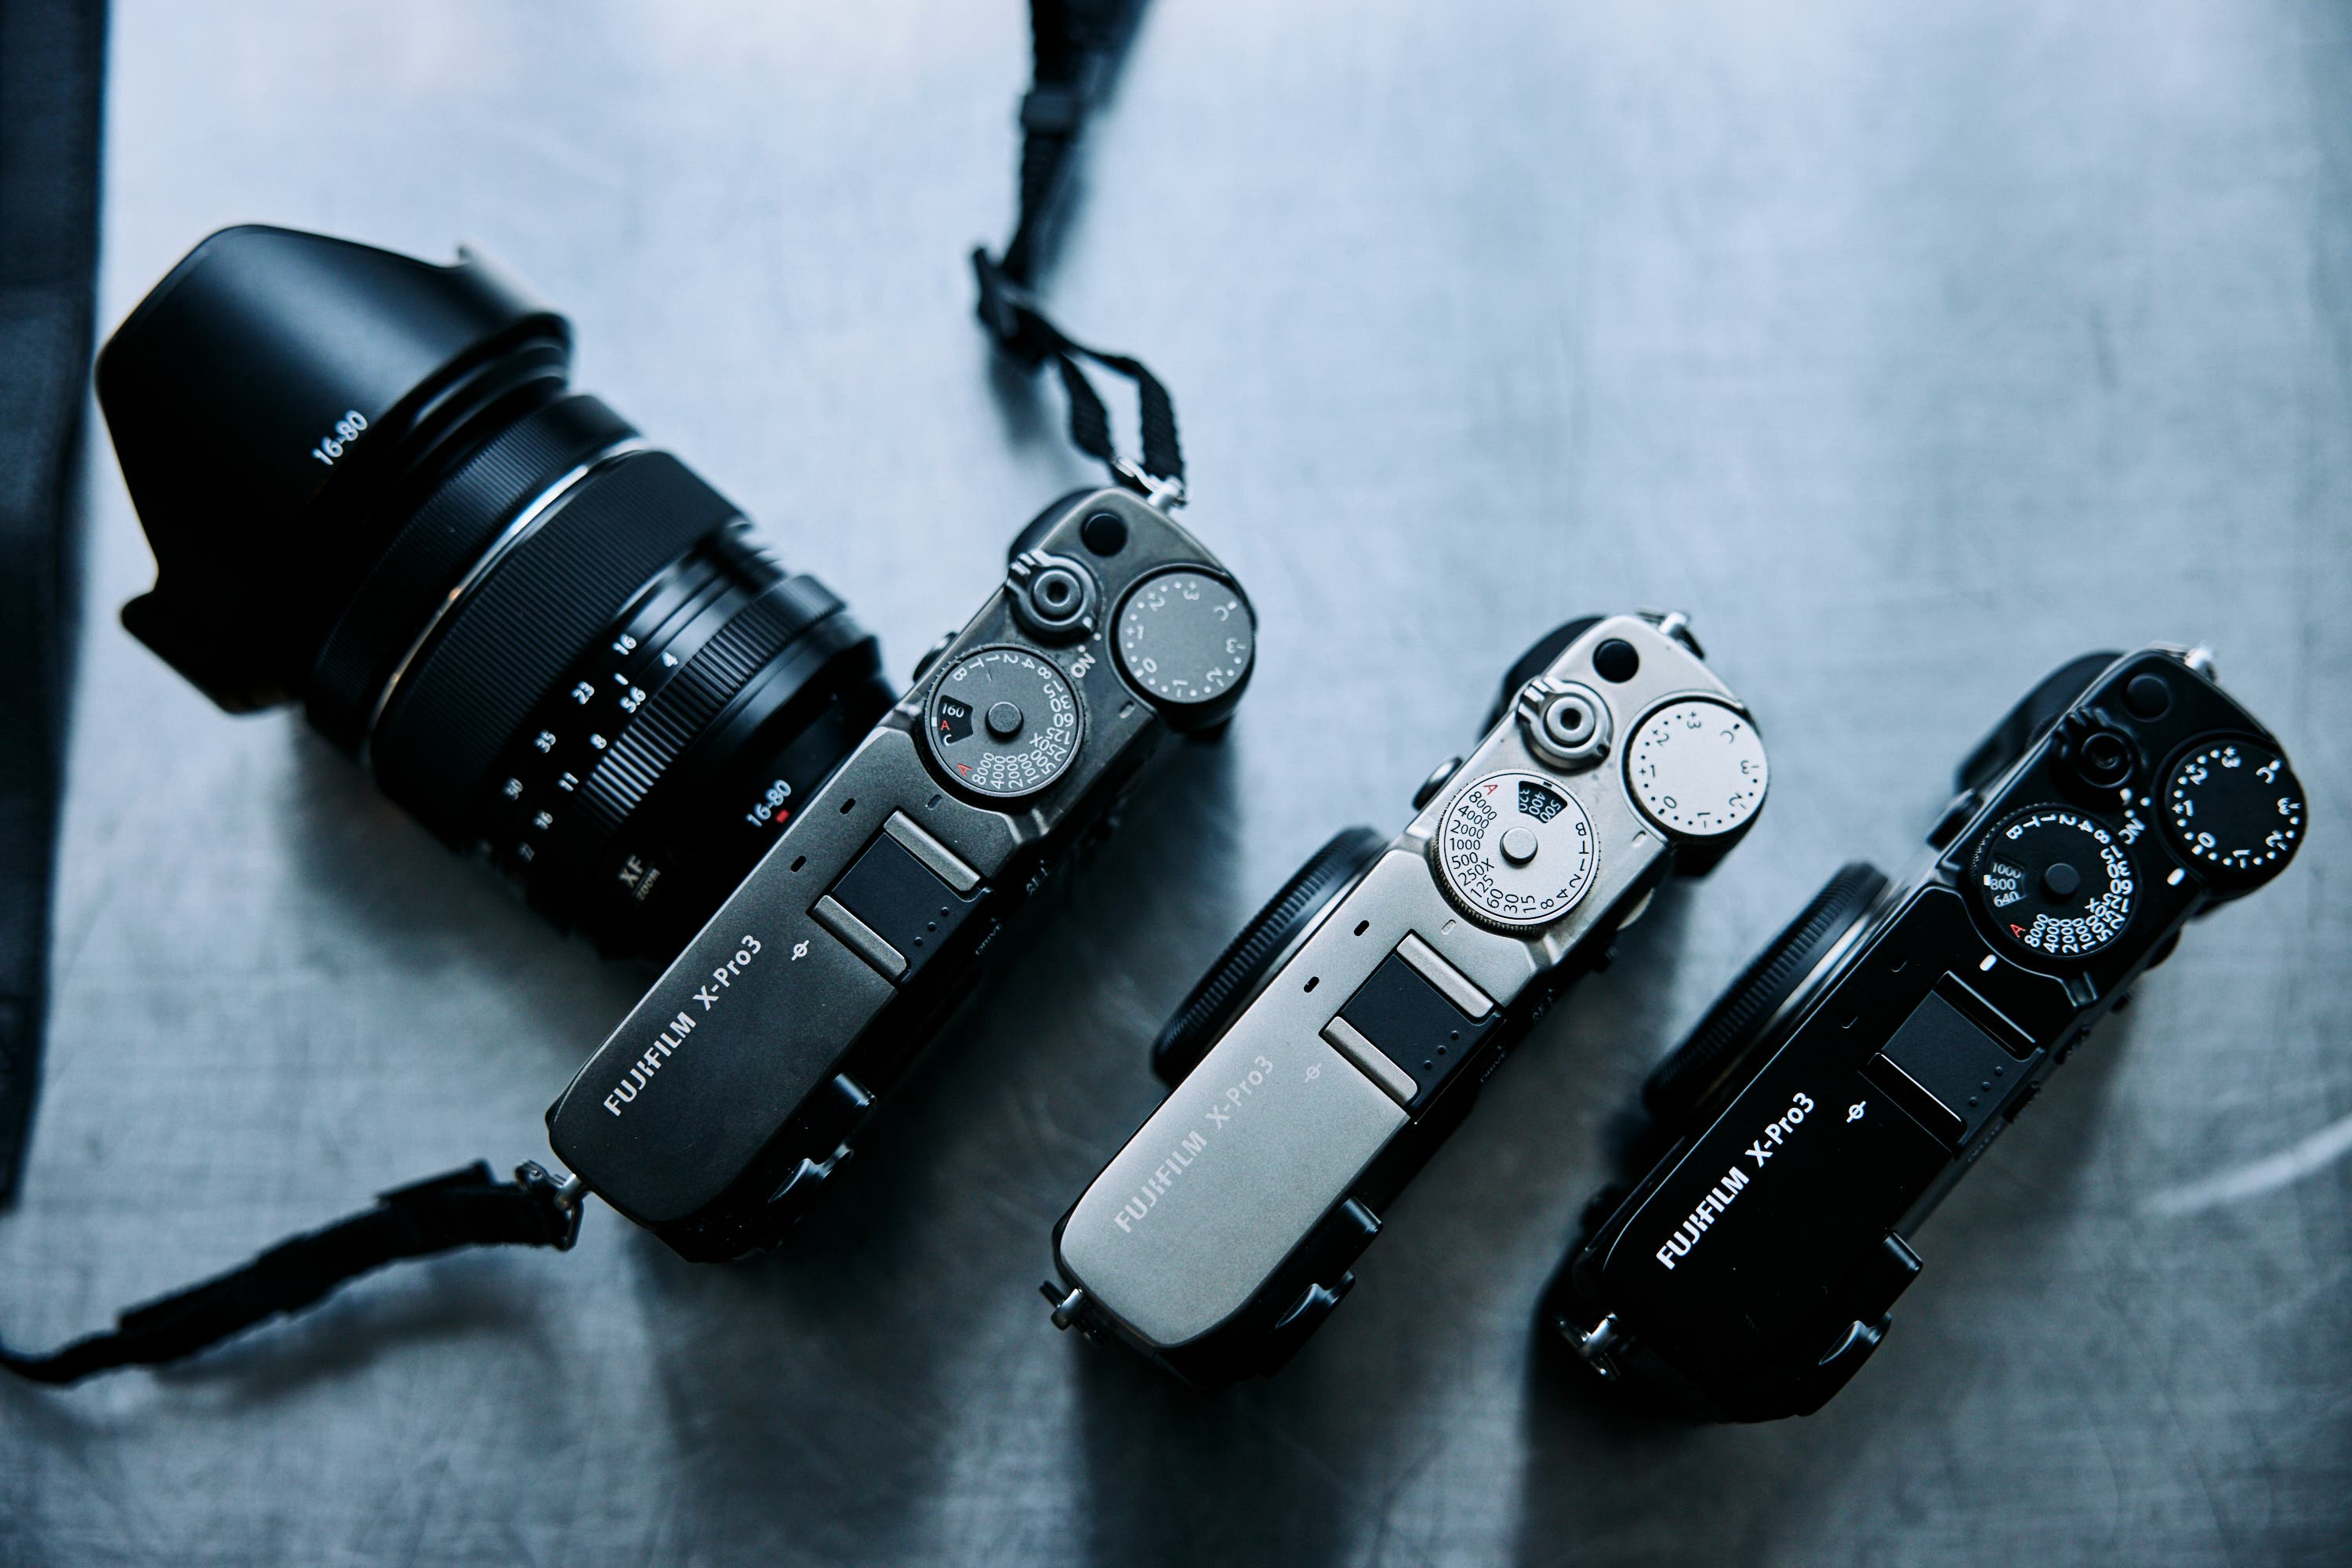 Review: Fujifilm X Pro 3 (The GOAT of Fujifilm Cameras)